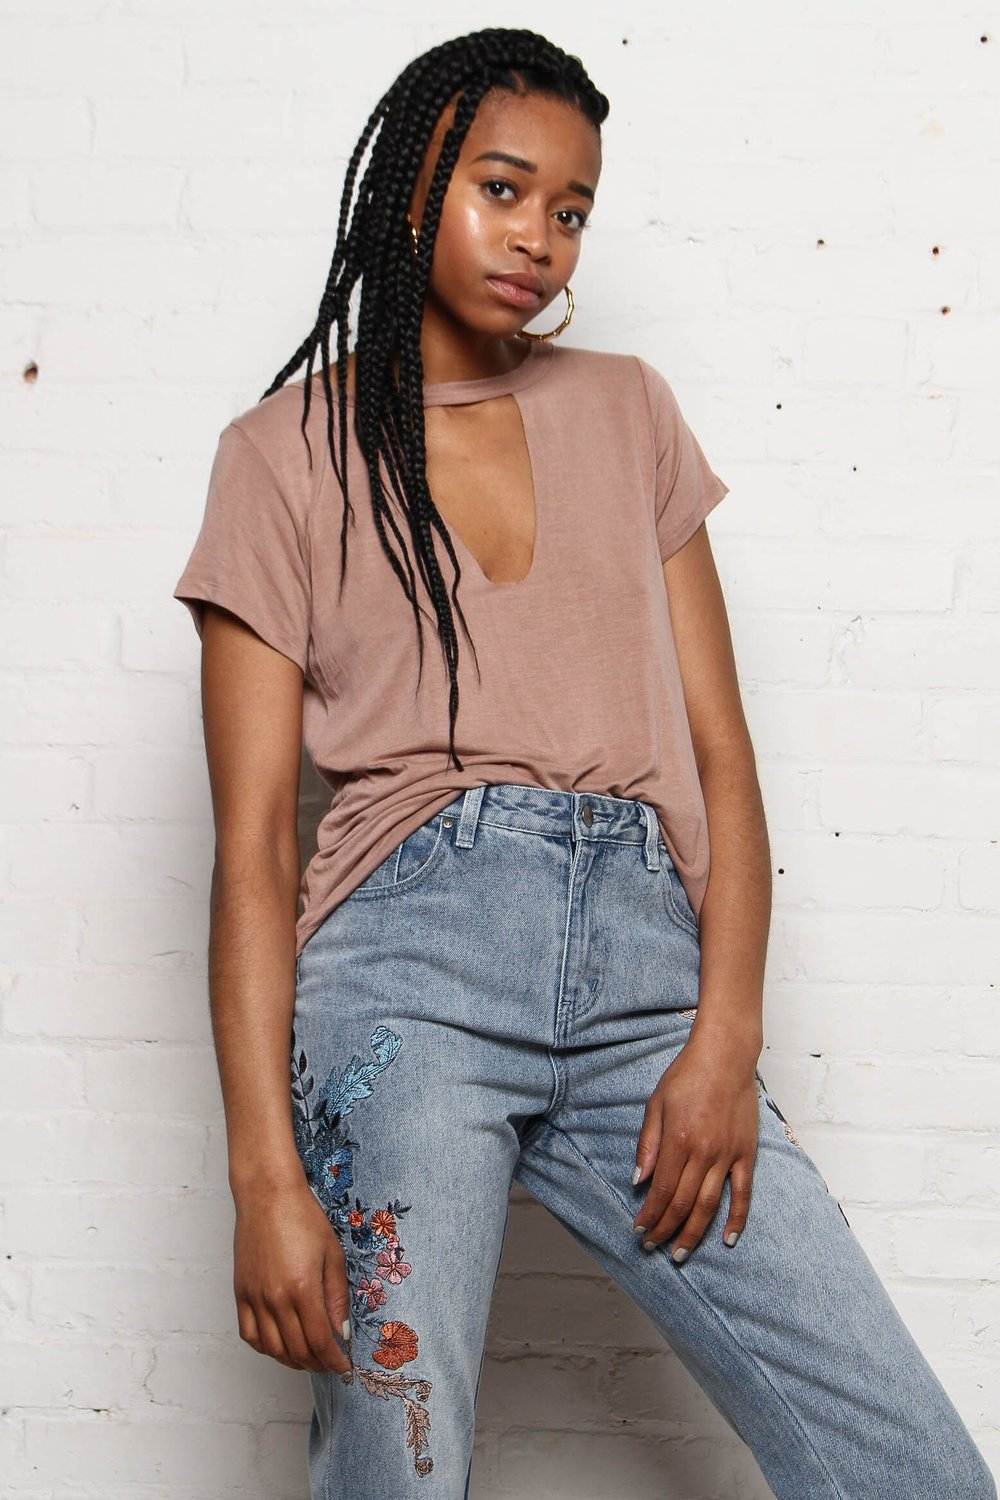 https://www.shopcalico.com/collections/new/products/dalia-cutout-choker-tee-shirt-faded-mocha